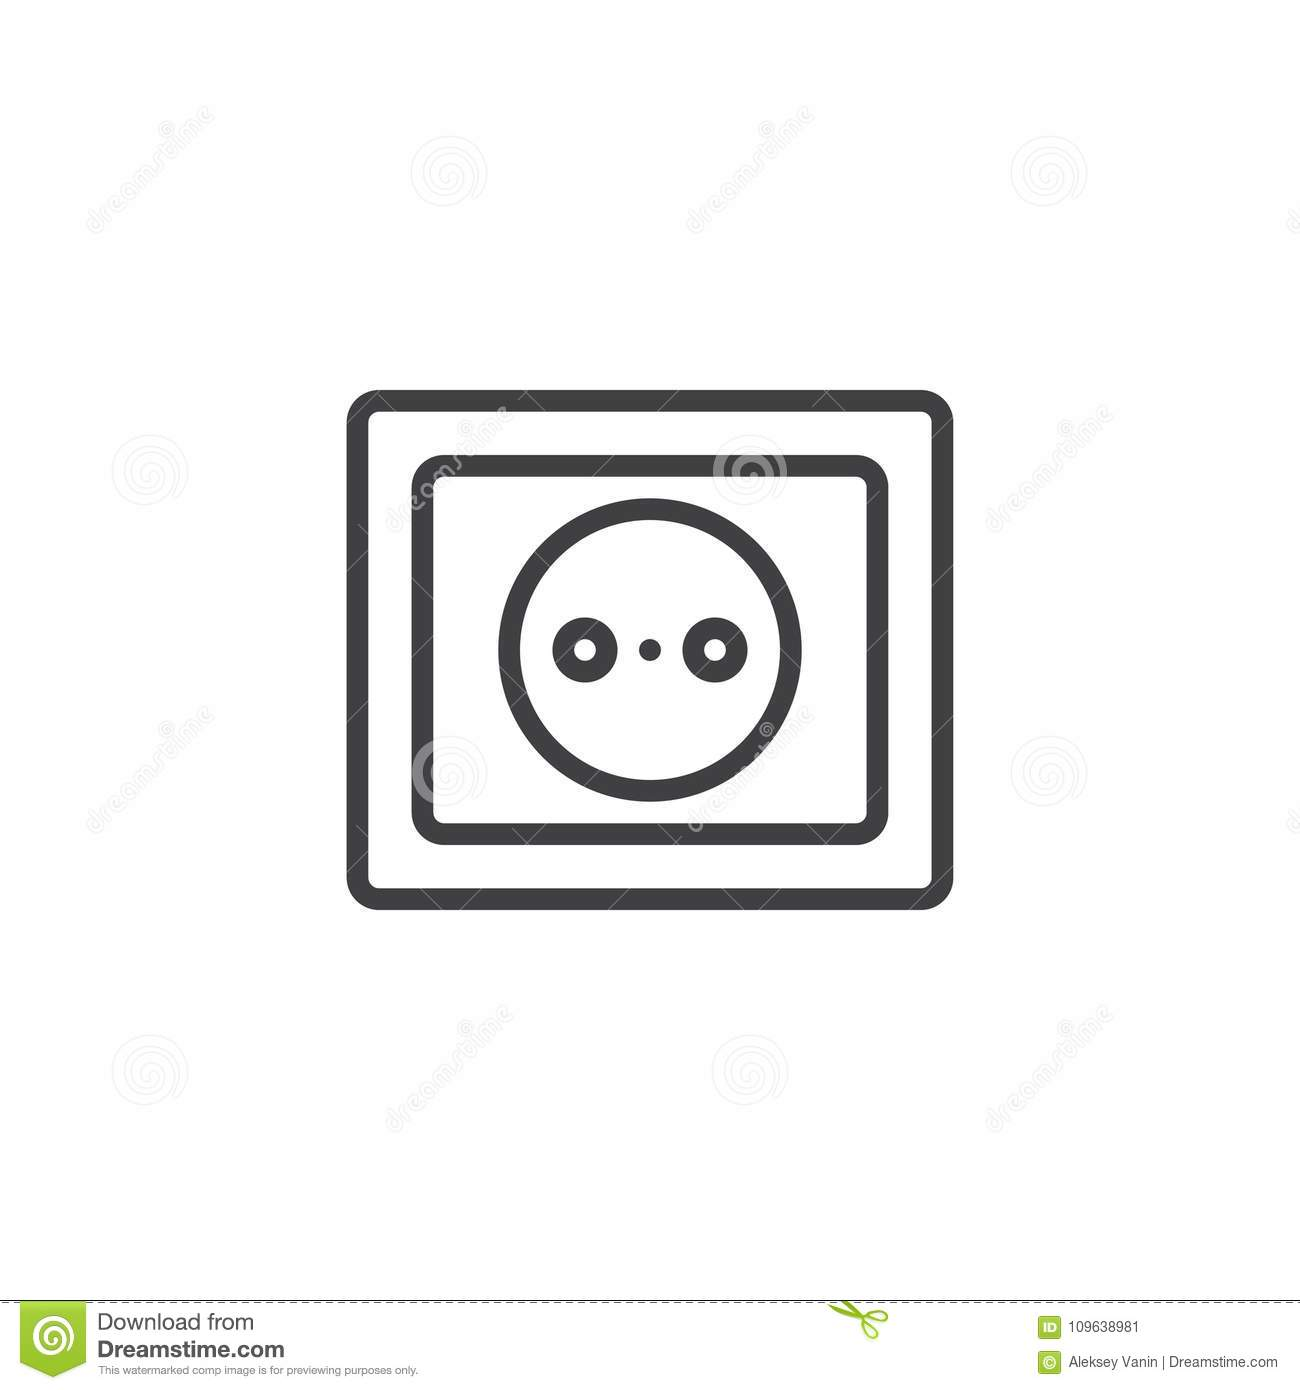 Power socket line icon stock vector. Illustration of ... on electrical transformer symbol, electrical lighting symbol, electrical cabinet symbol, electrical light symbol, electrical socket symbol, electrical ground symbol, electrical panel symbol, electrical float switch symbol, electrical wall switch symbol, electrical motor symbol, electrical power symbol, electrical fan symbol, electrical conduit symbol, electrical outlet symbol, electrical cap symbol, electrical fuse symbol, electrical plug symbol, antenna electrical symbol, electrical circuit breaker symbol, electrical switches symbol,